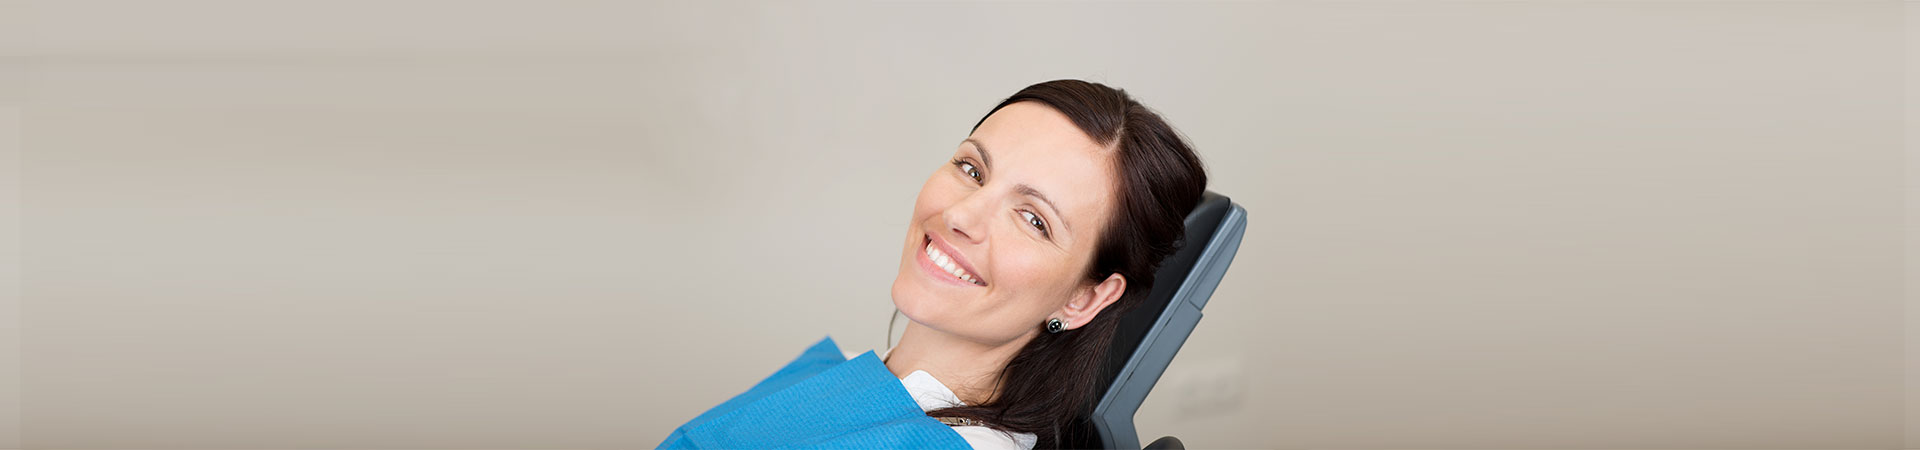 4 Signs You May Need to Visit the Dentist